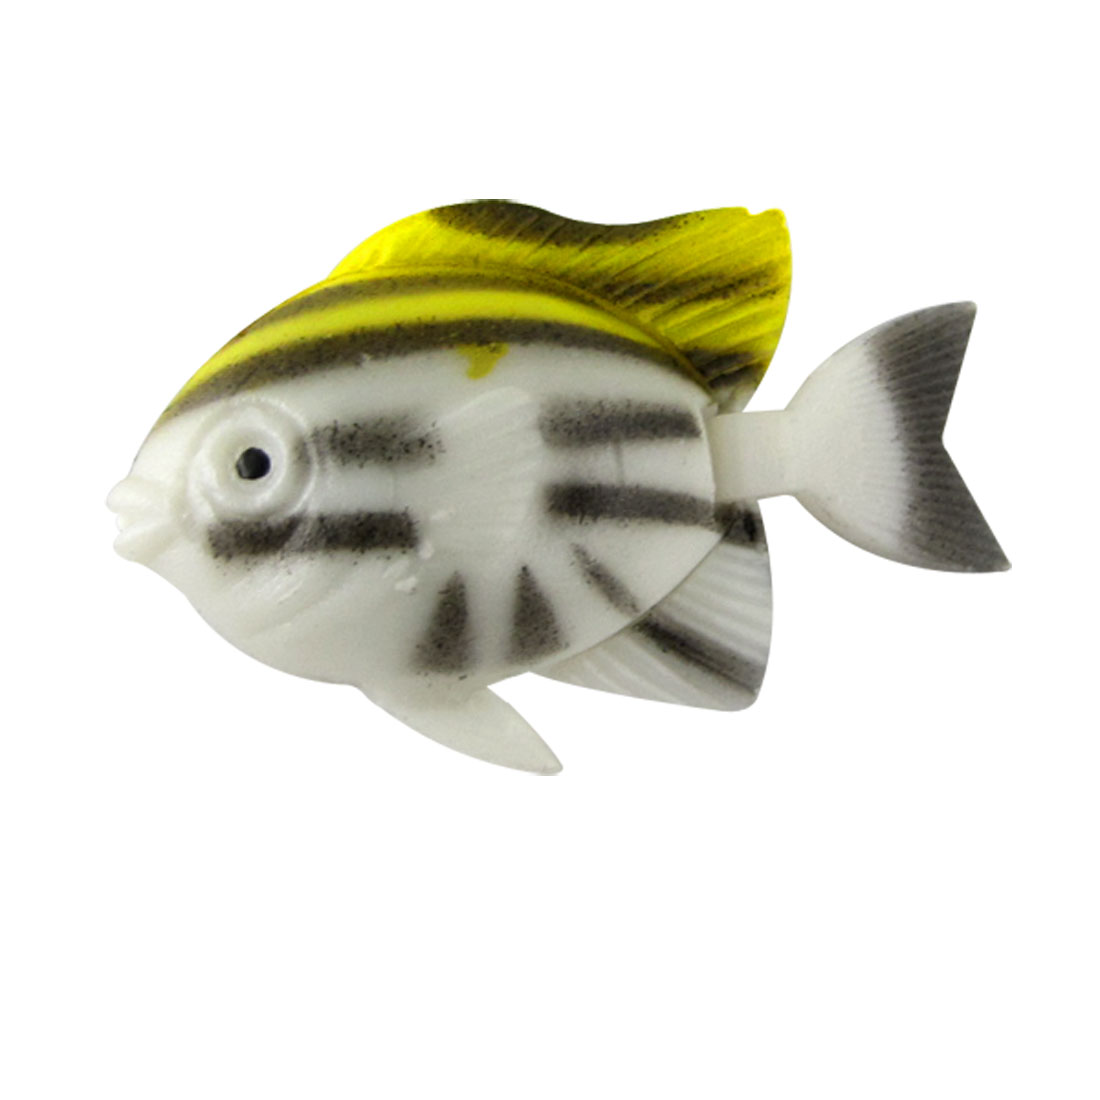 5 Pieces Mini White Black Yellow Fish Decoration for Aquarium Tank